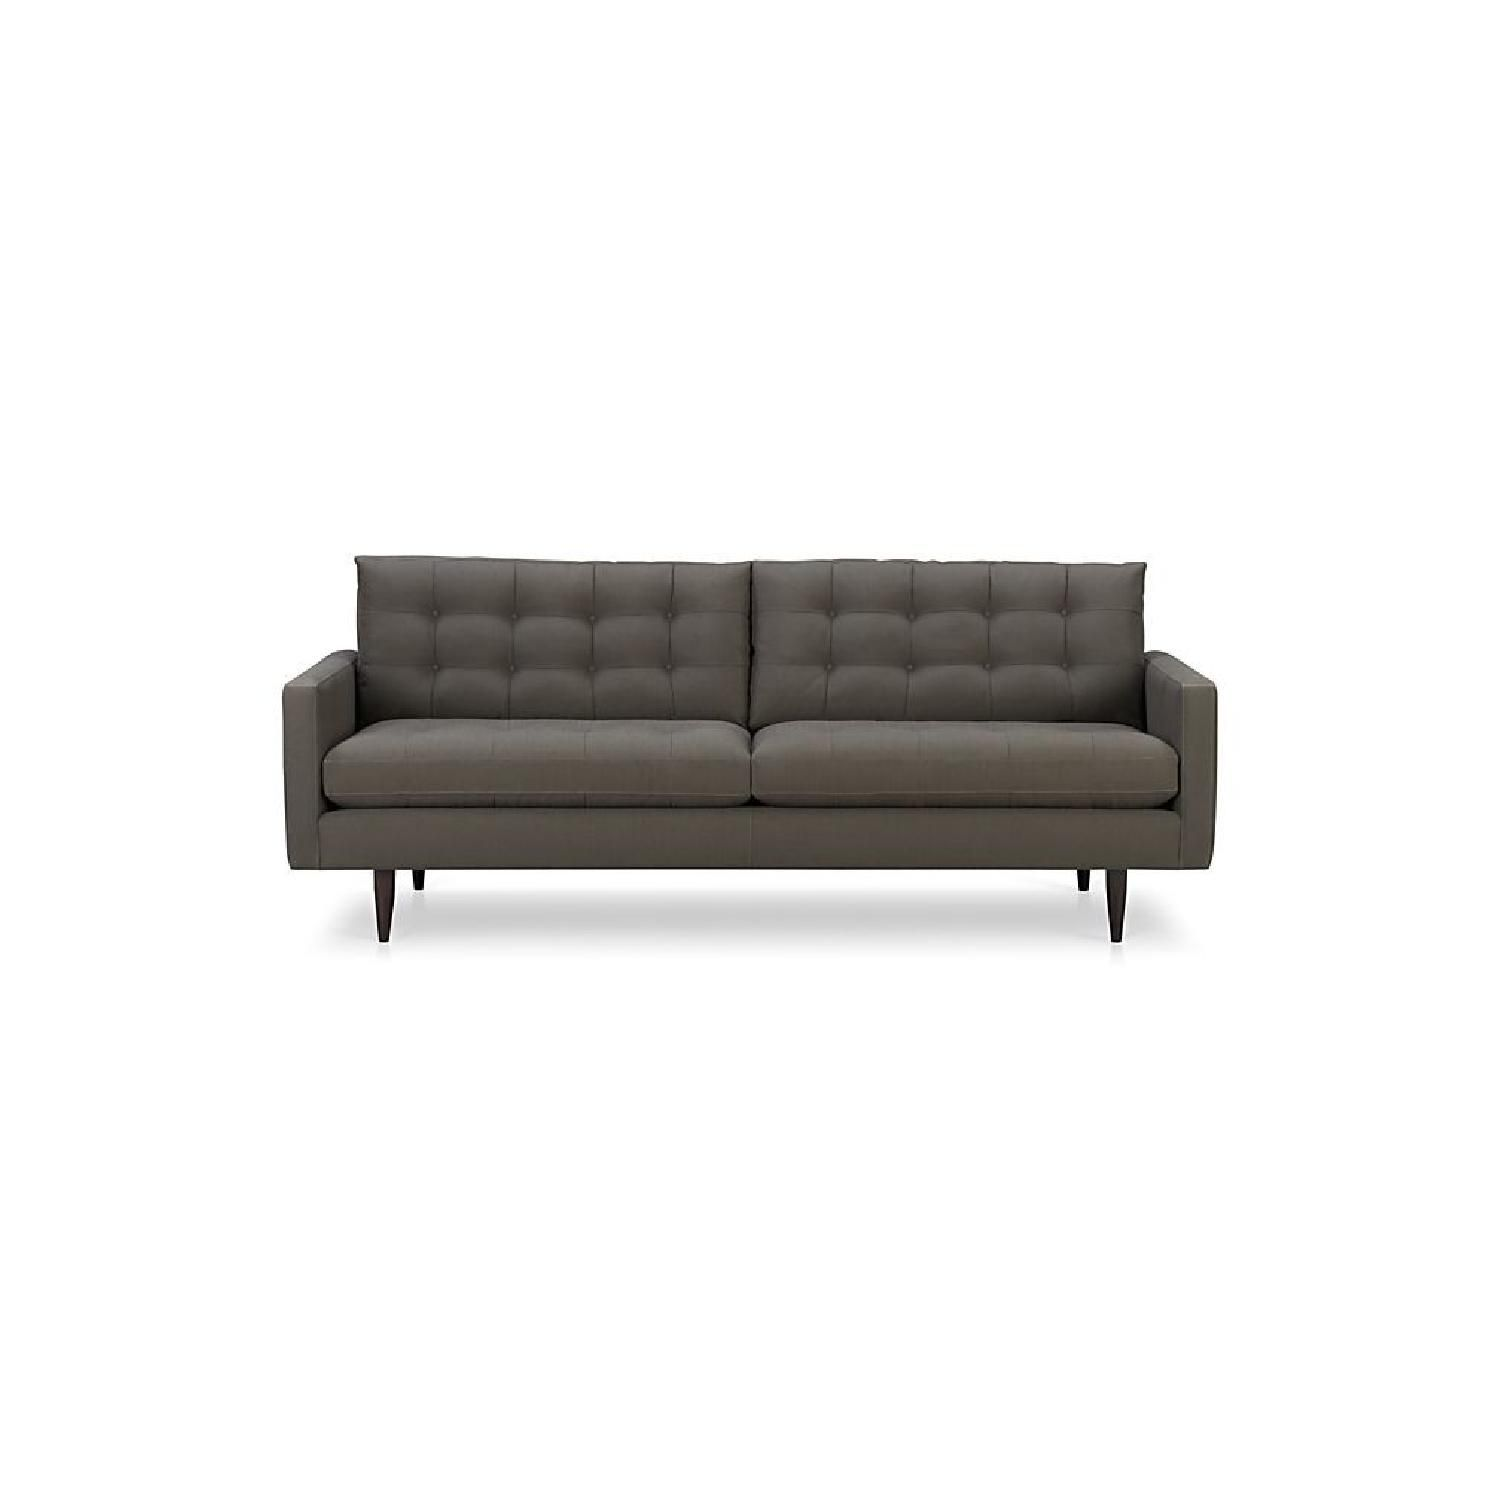 Crate Barrel Petrie Camden Sofa In Graphite